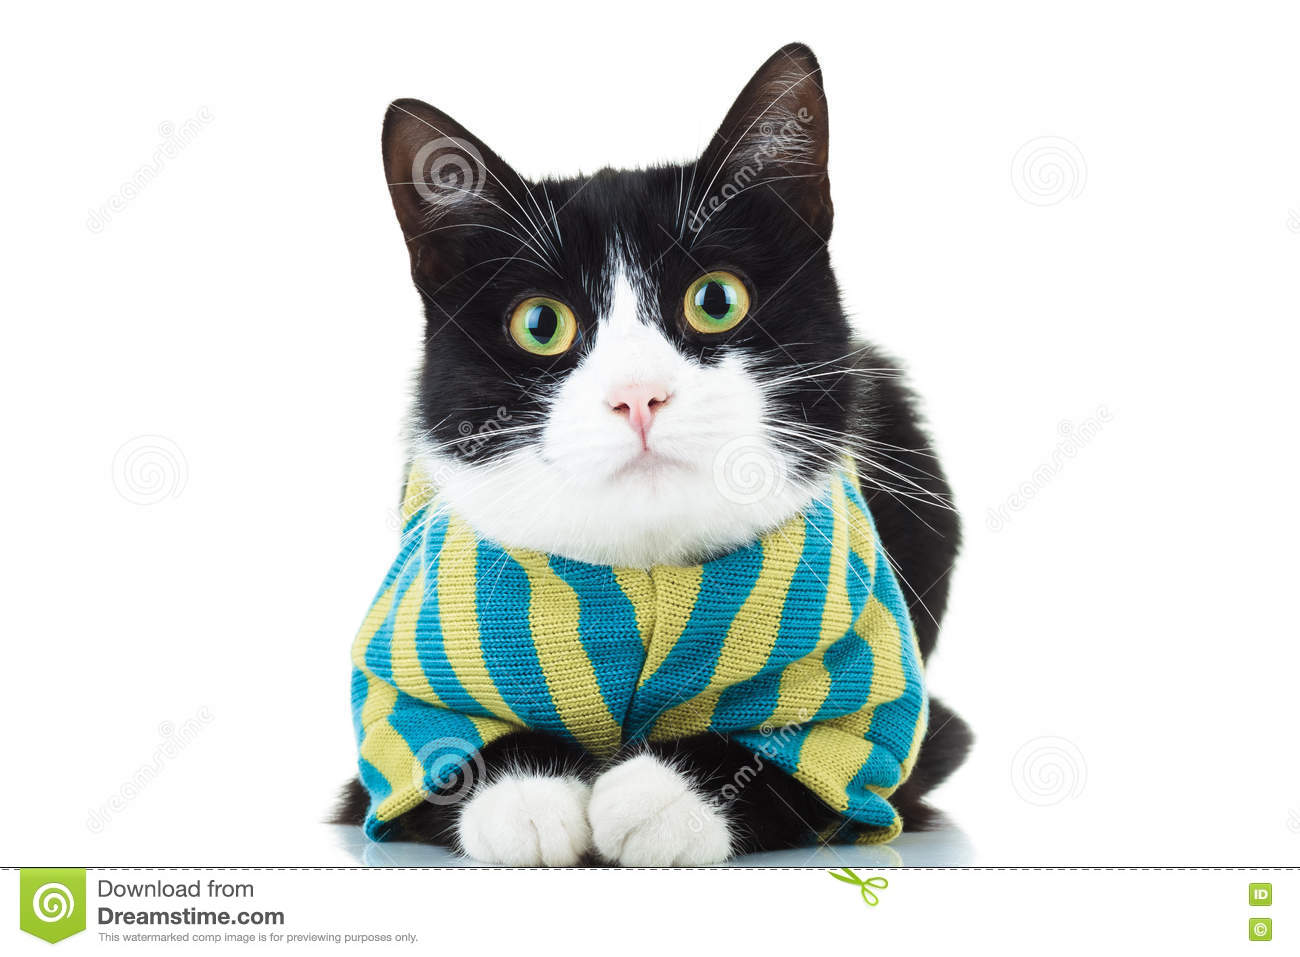 Black and white cat wearing clothes